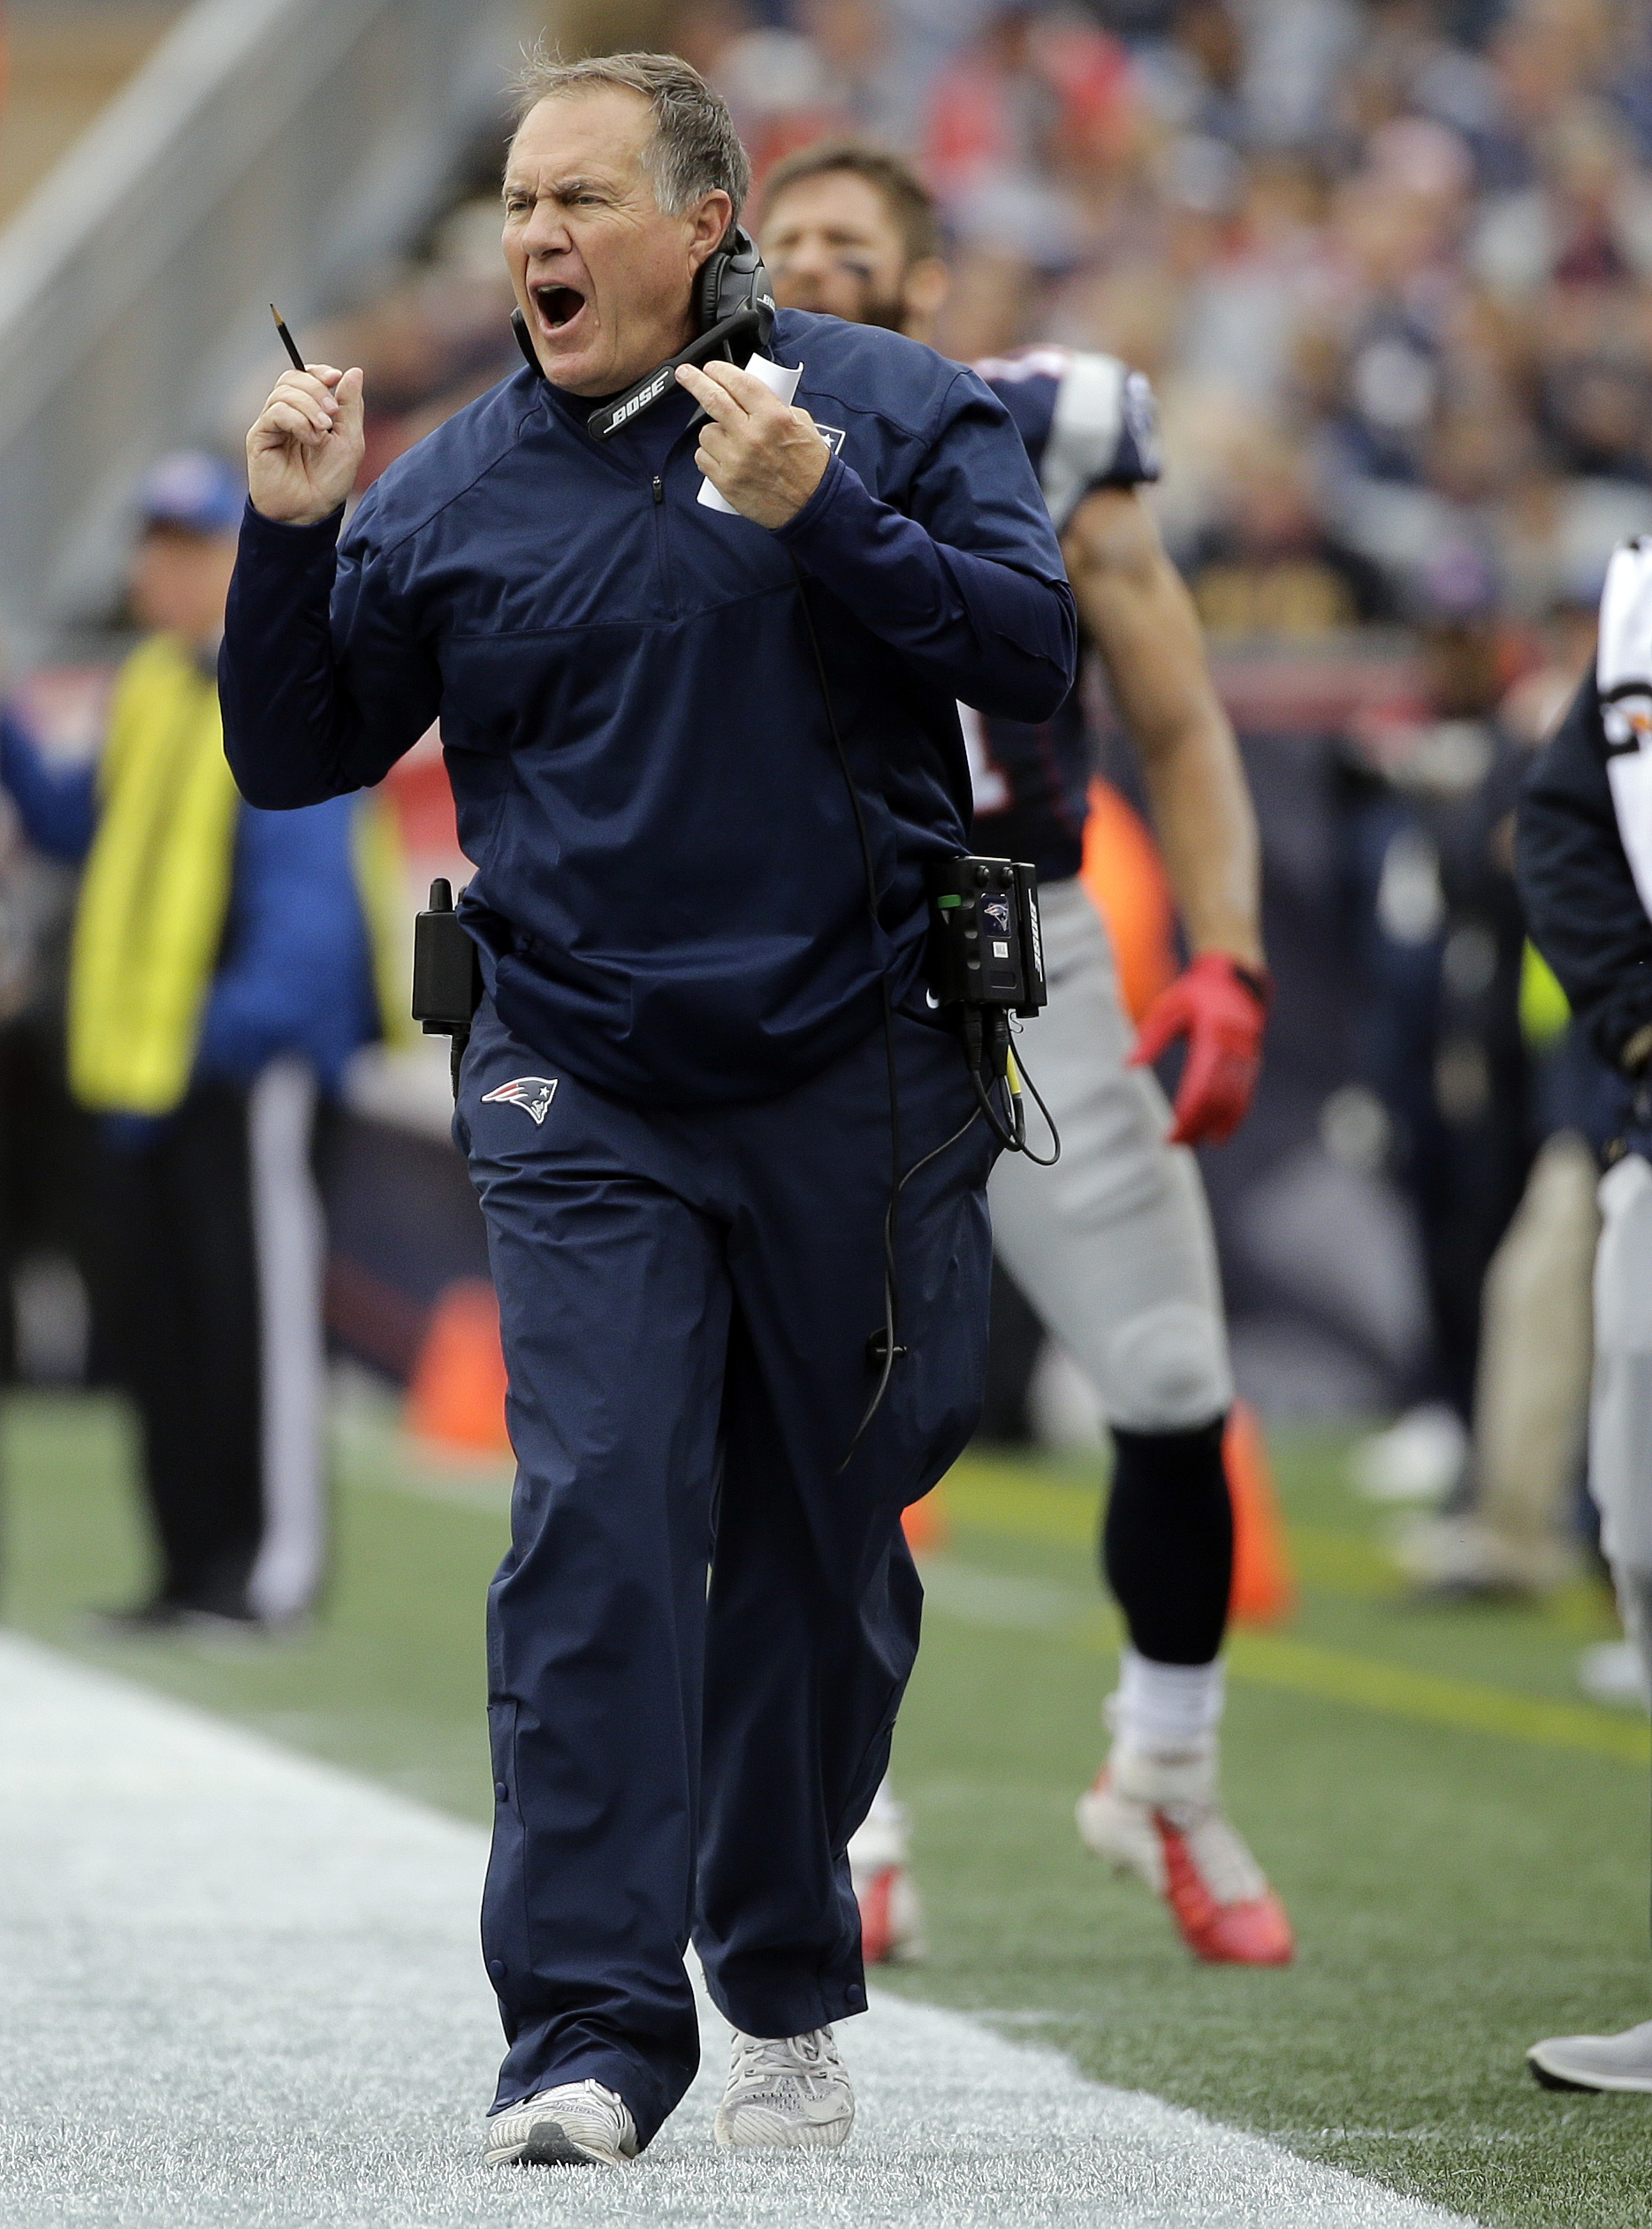 New England Patriots head coach Bill Belichick shouts from the sideline during the first half of an NFL football game against the Buffalo Bills Sunday, Oct. 2, 2016, in Foxborough, Mass. (AP Photo/Elise Amendola)